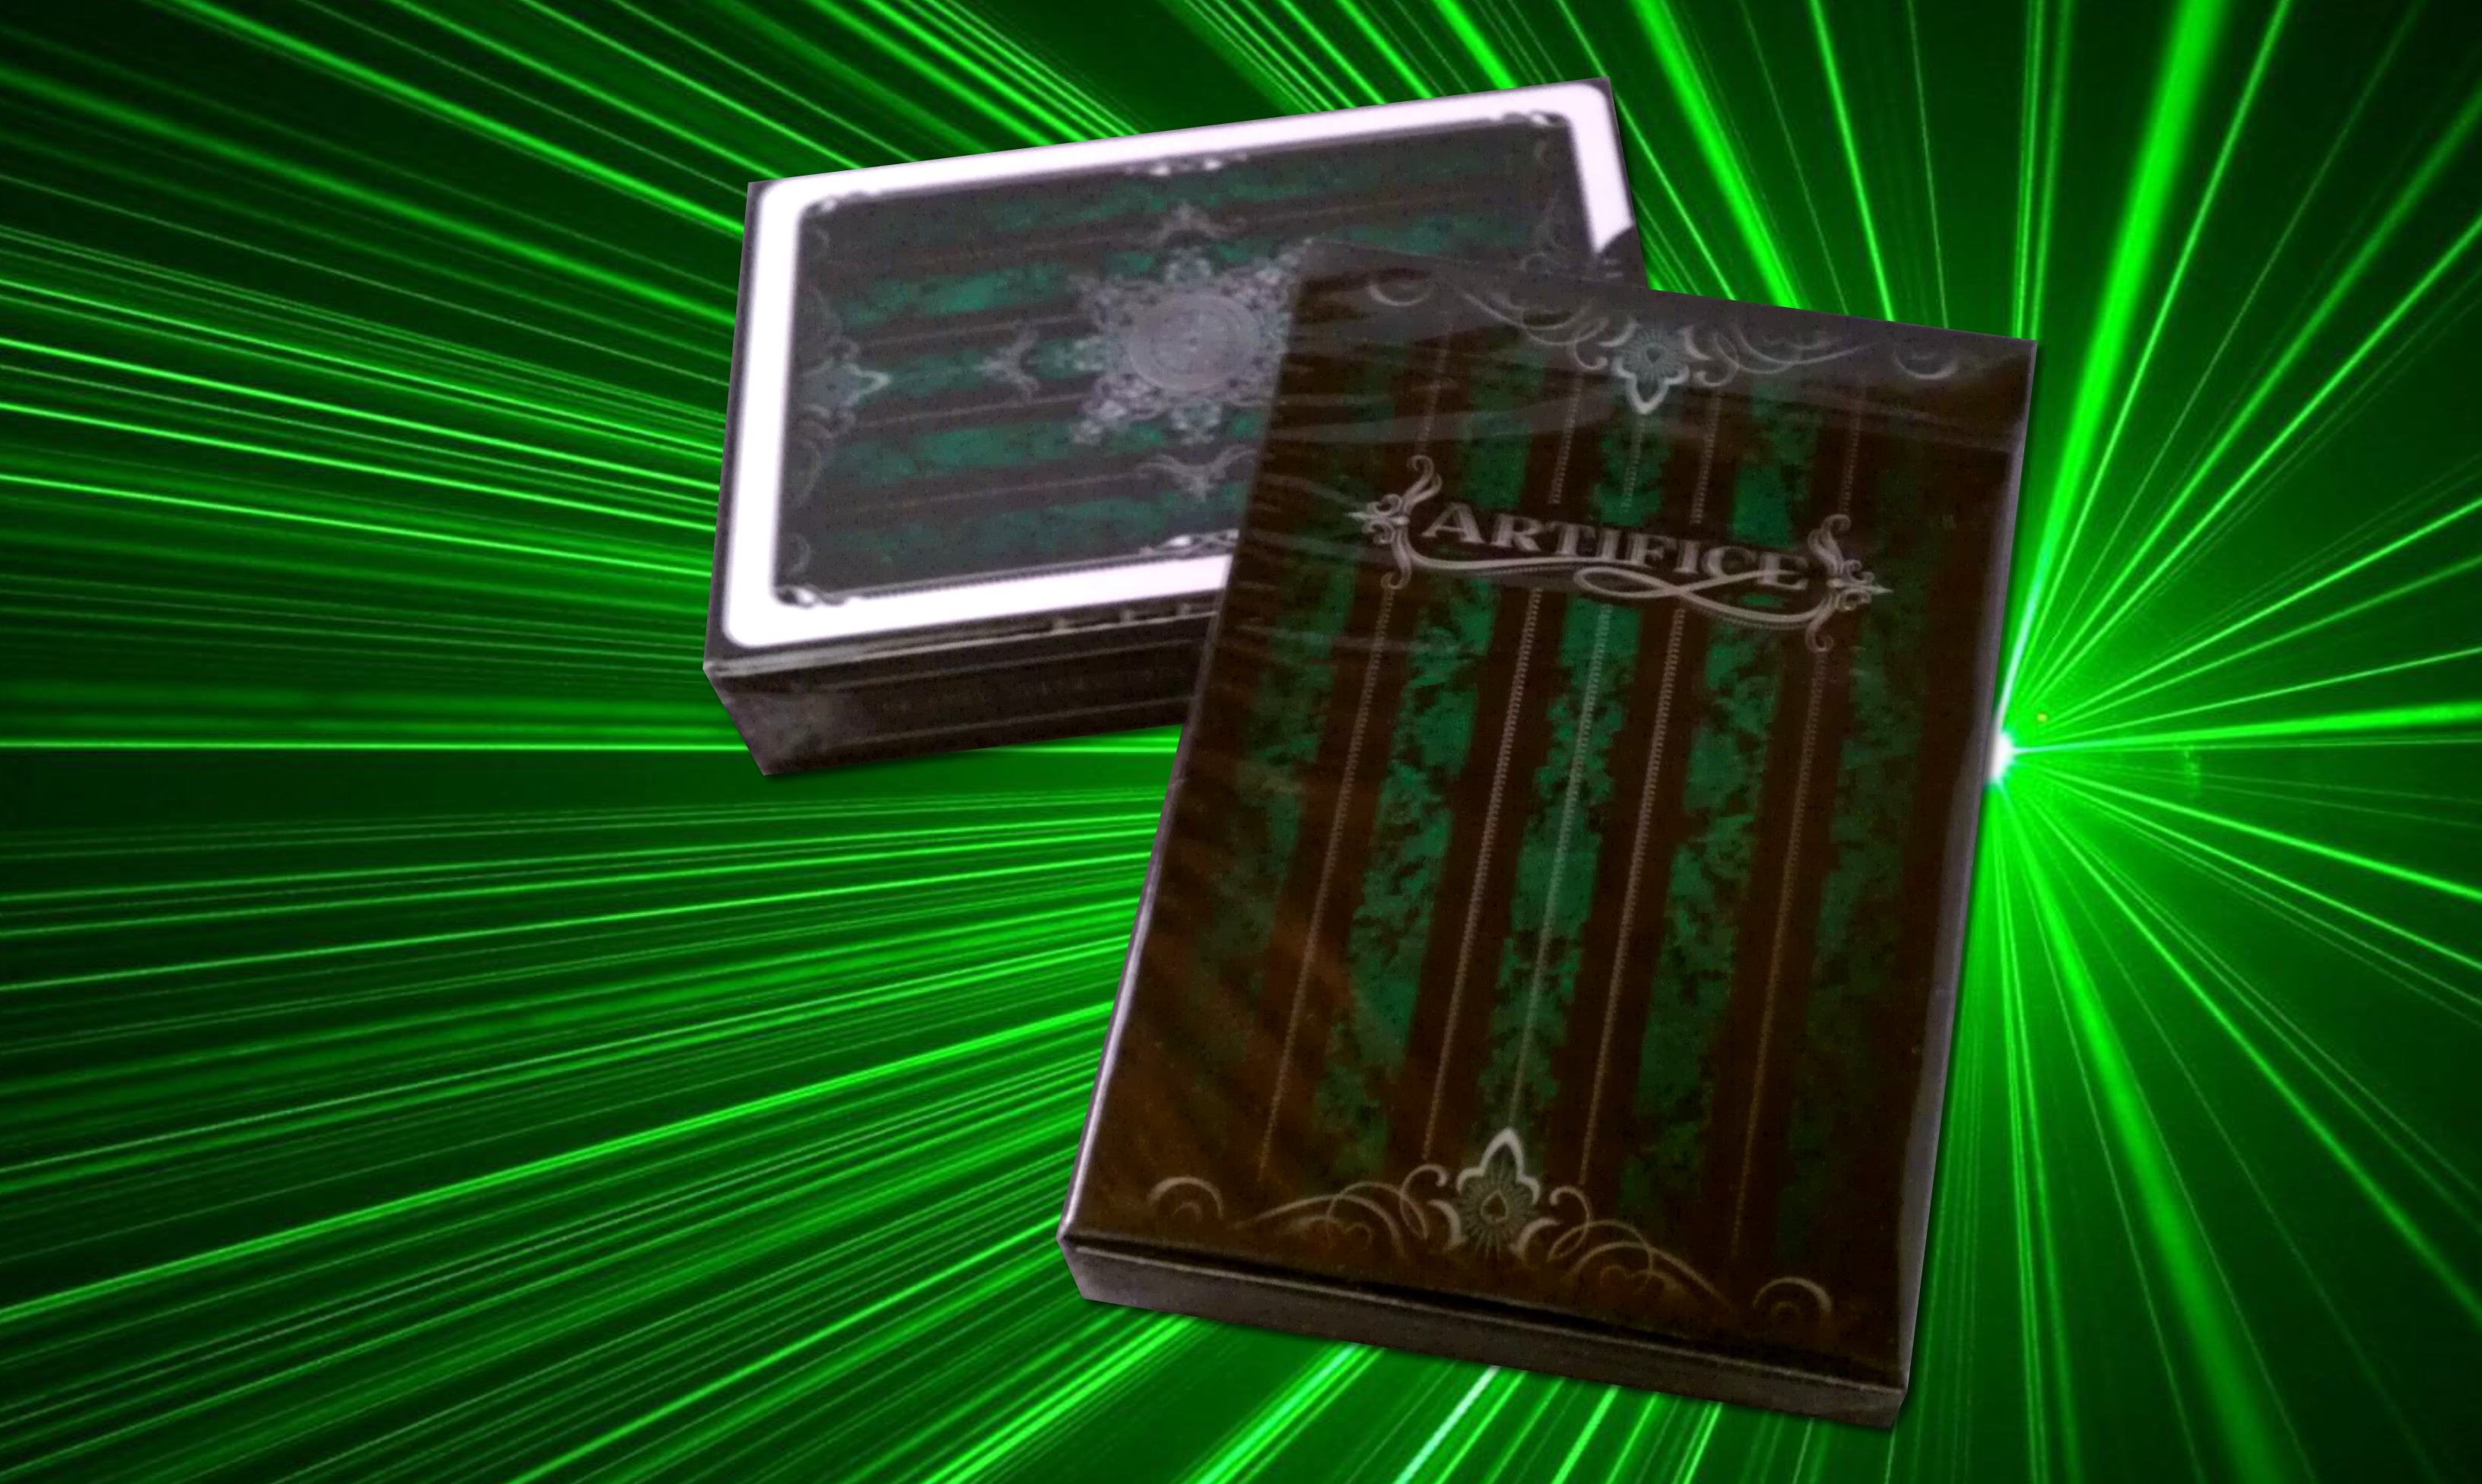 Artifice Deck - Performance Coated Playing Cards (2nd Edition) by Ellusionist - Emerald Green magic playing cards